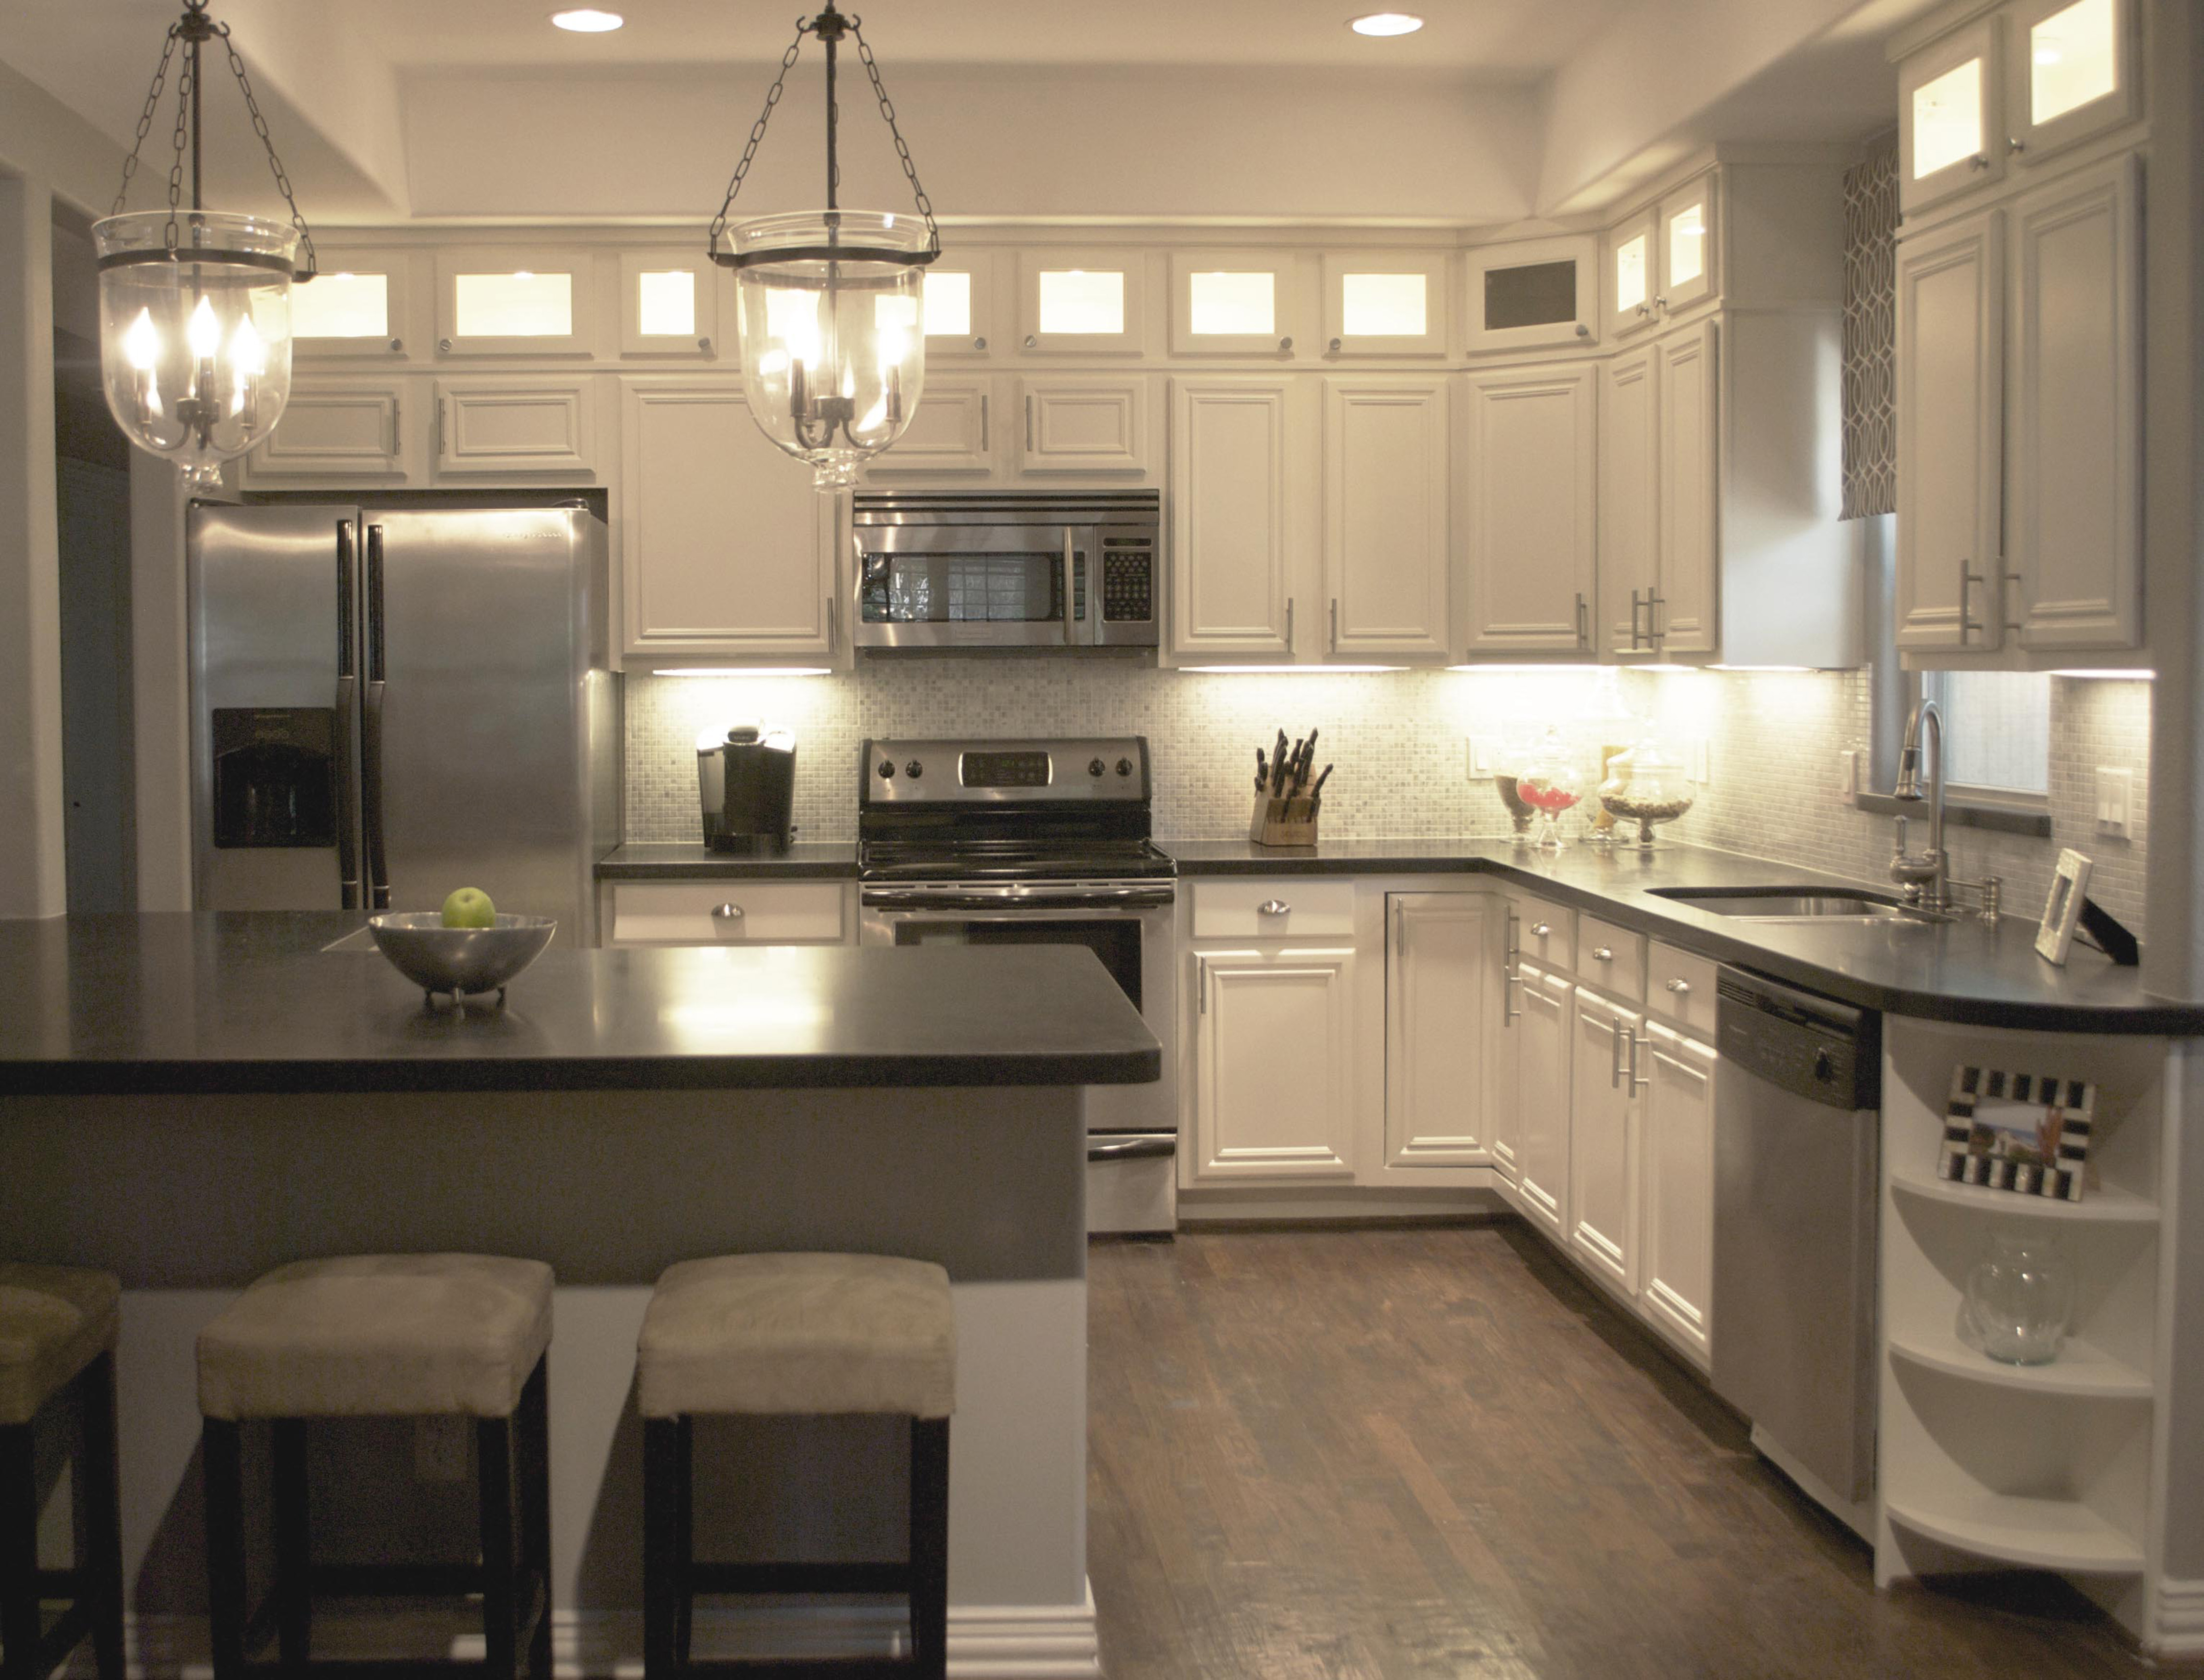 northernvalleyconstructioninc remodeling kitchens CONSTRUCTION RESOURCE CENTER